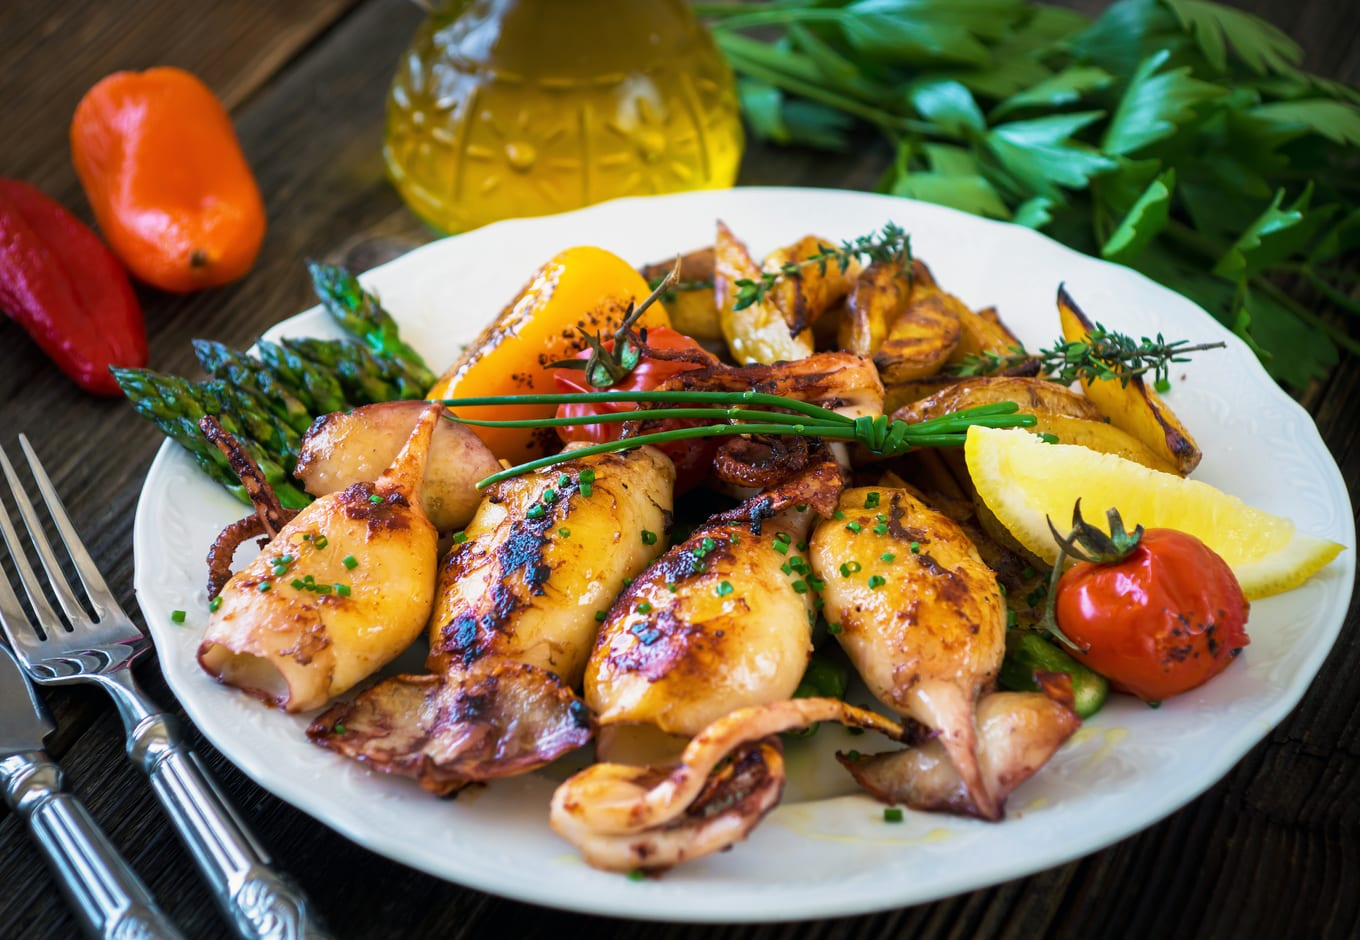 Grilled squid with espargus and potatoes.